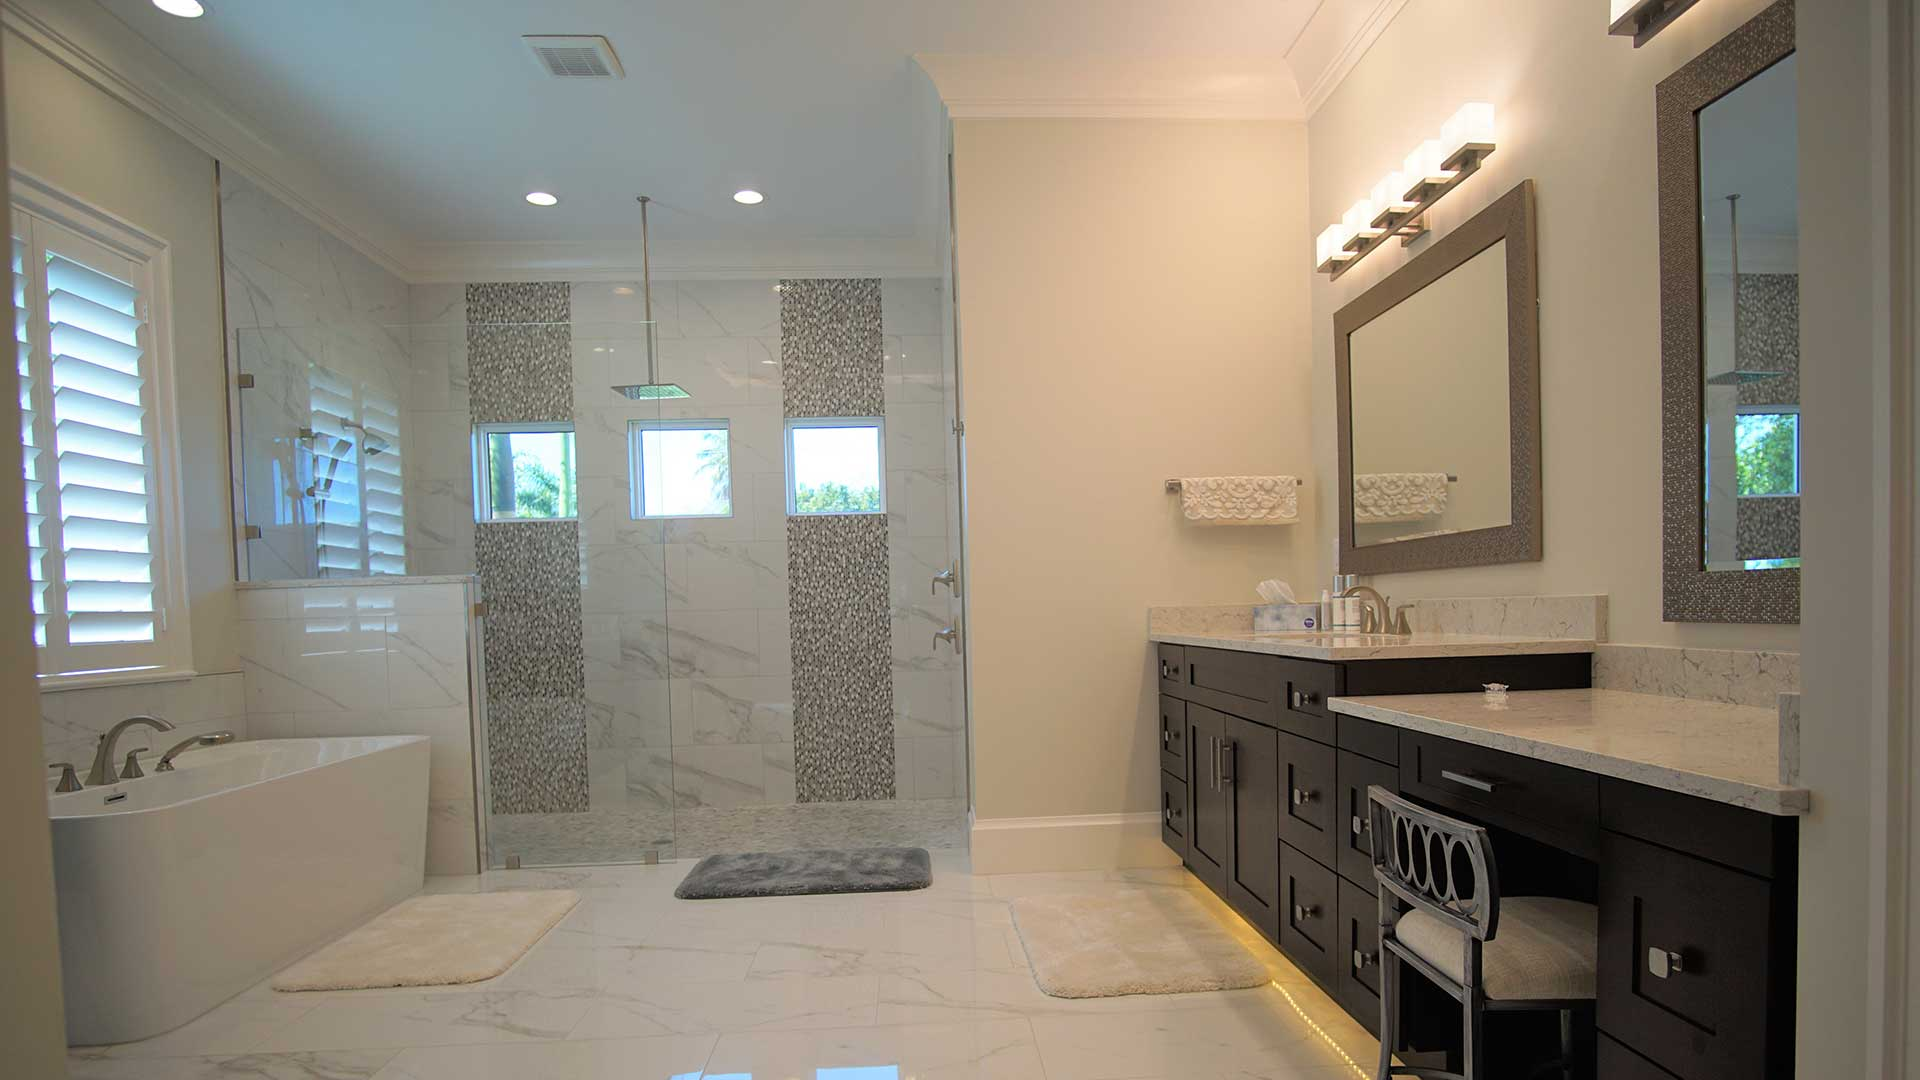 Bathroom remodel by Spec Development in Naples, FL